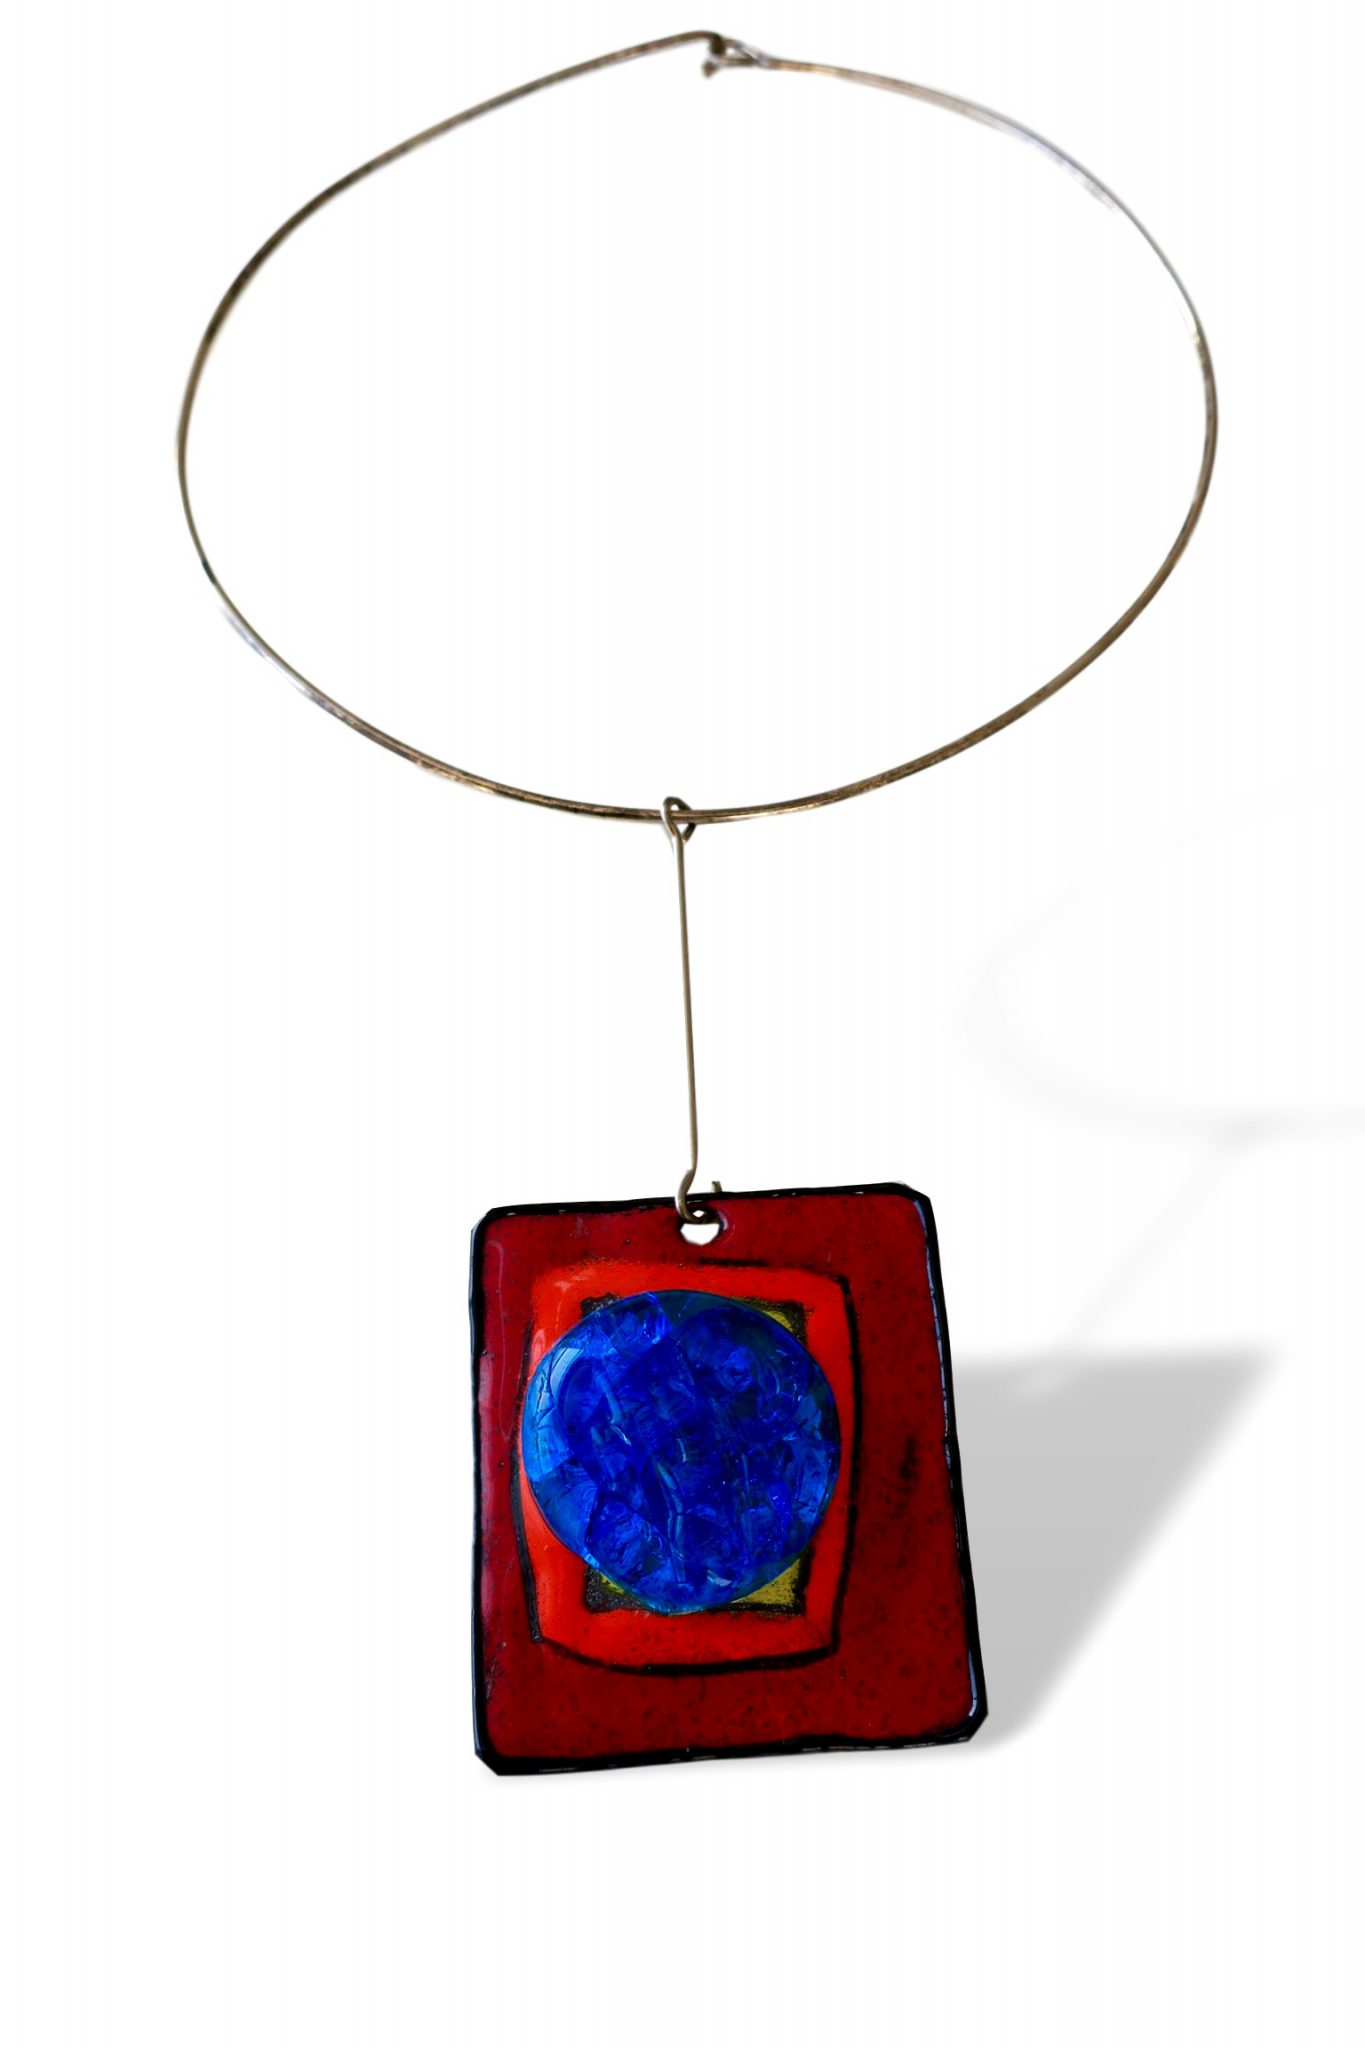 Pierre Cardin Silver Enamel And Glass Pendant Necklace